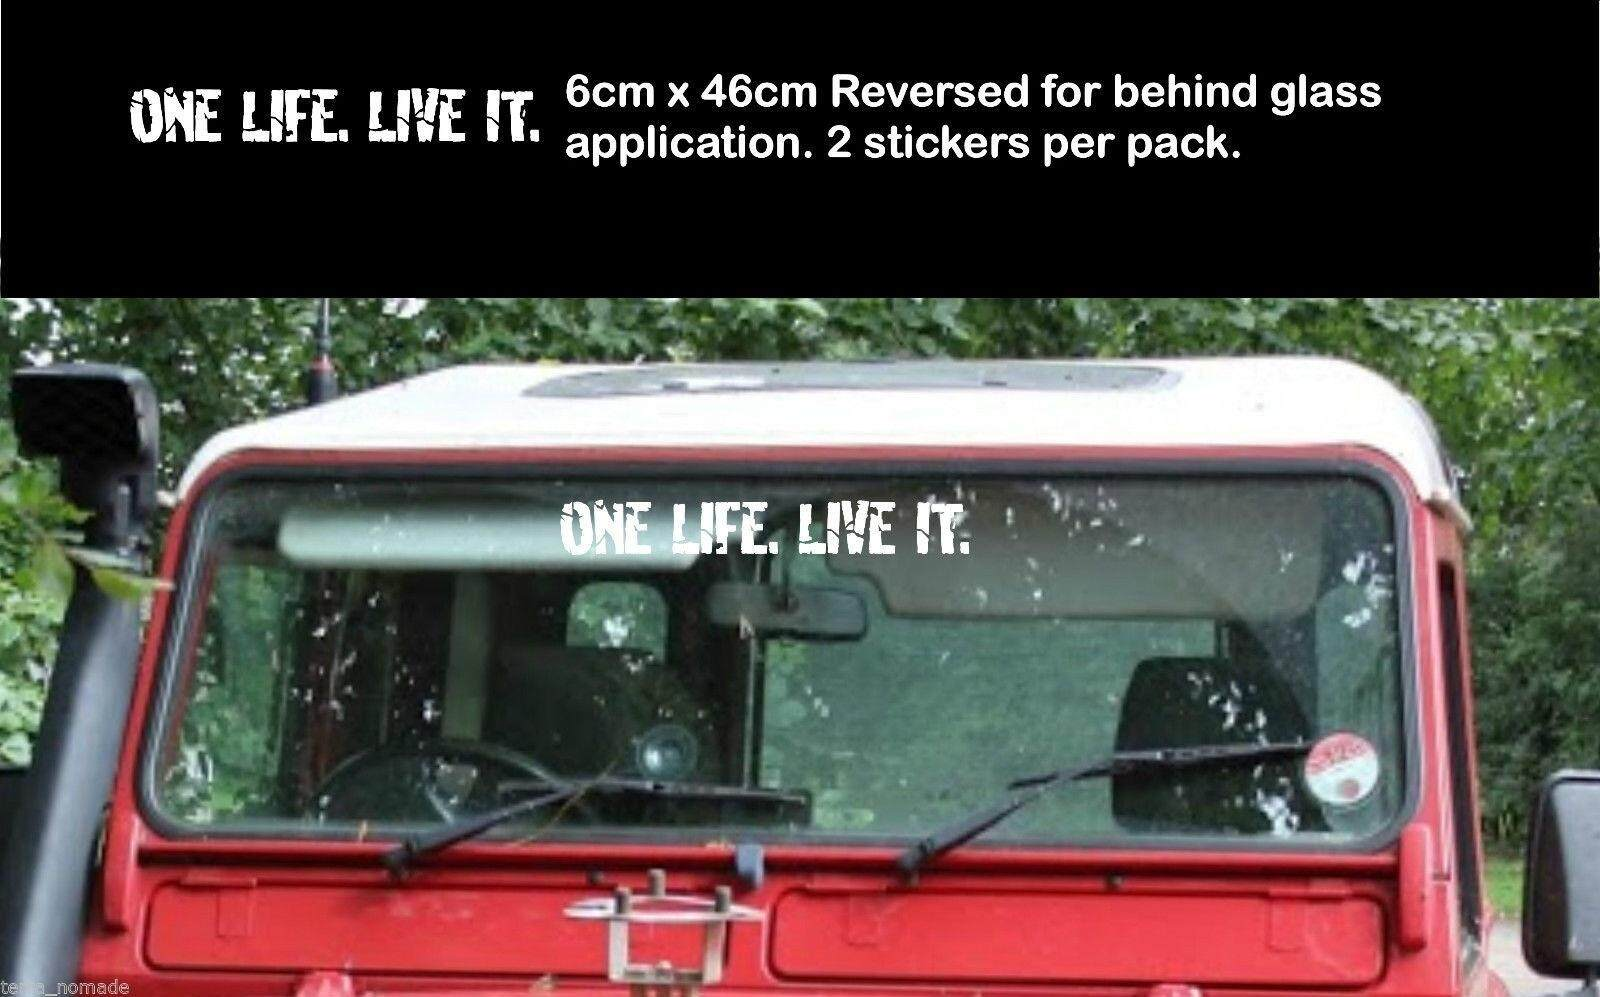 2 X One Life Live It Stickers Land Rover Camel Trophy 4x4 Off Road Funny 6x46cm